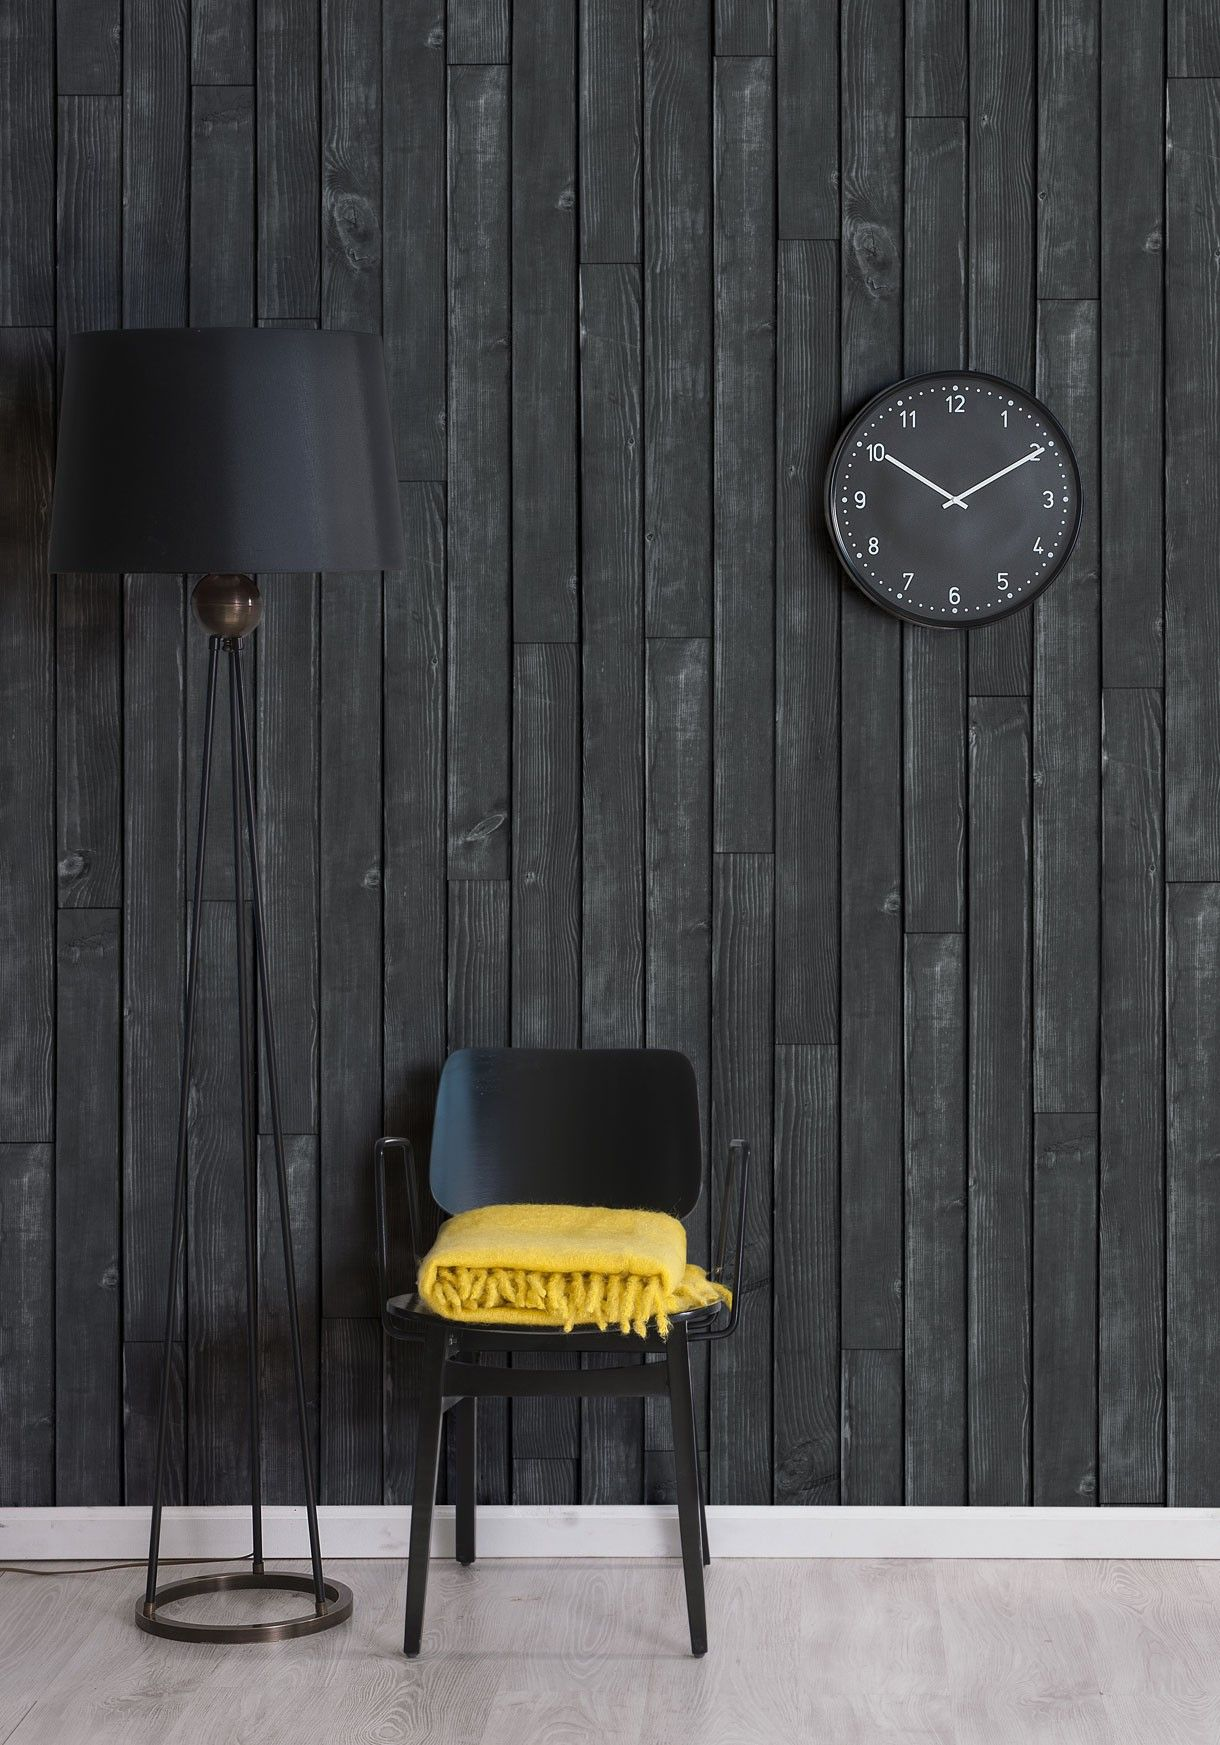 Black Wooden Boards Wallpaper Timber Panelling Milton King In 2021 Decor 3d Wallpaper For Walls Timber Panelling